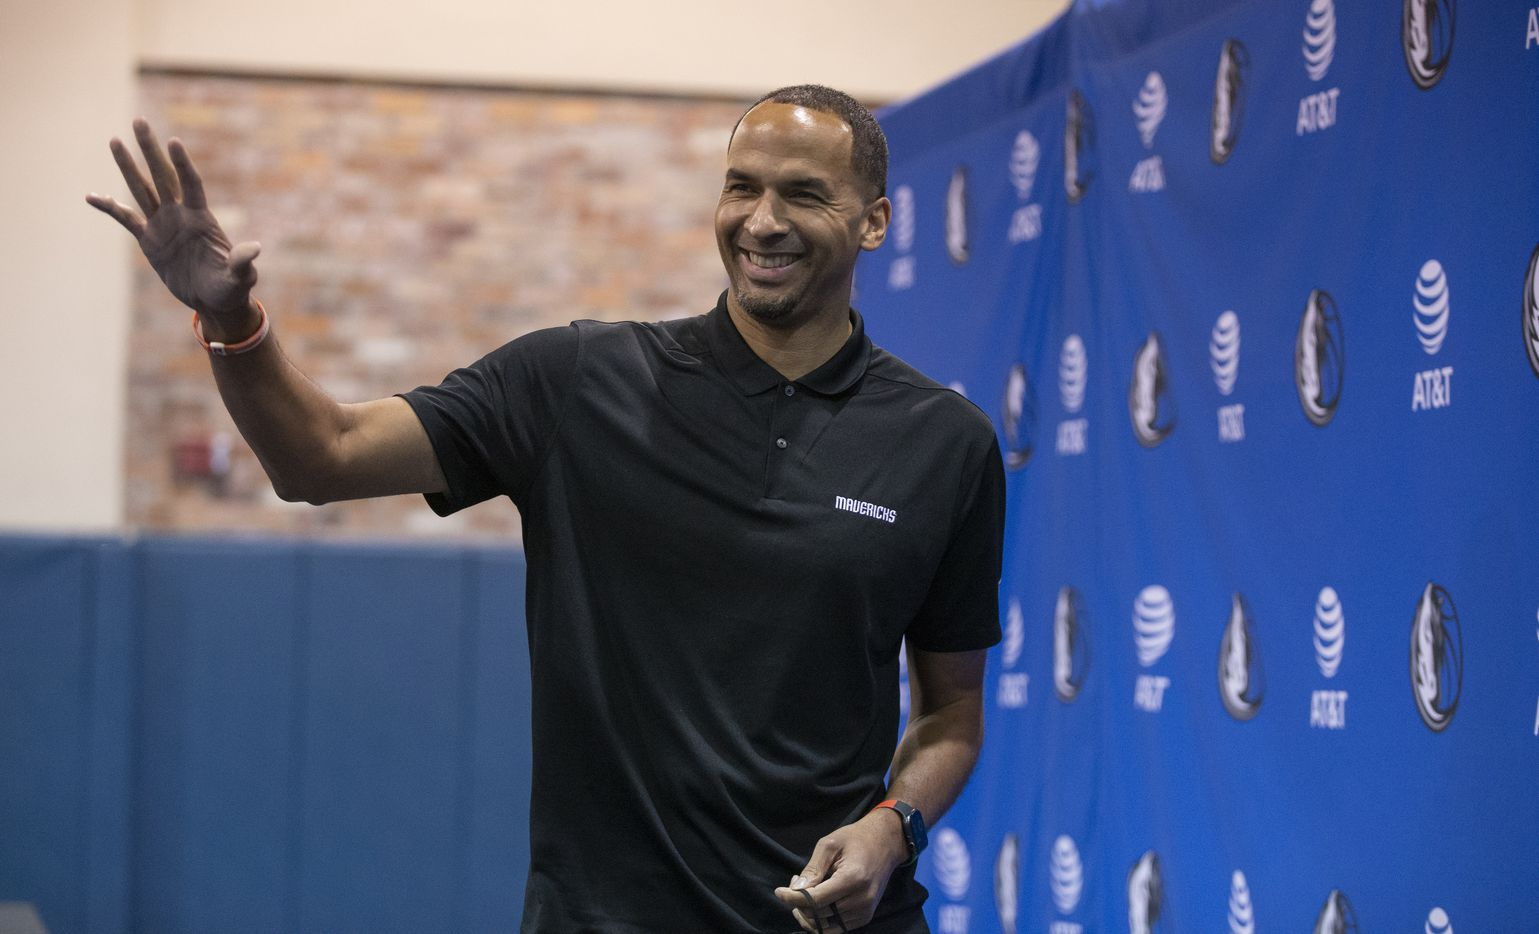 Dallas Mavericks General Manager Nico Harrison waves as he leaves a press conference in Dallas, Friday, August 27, 2021. (Brandon Wade/Special Contributor)